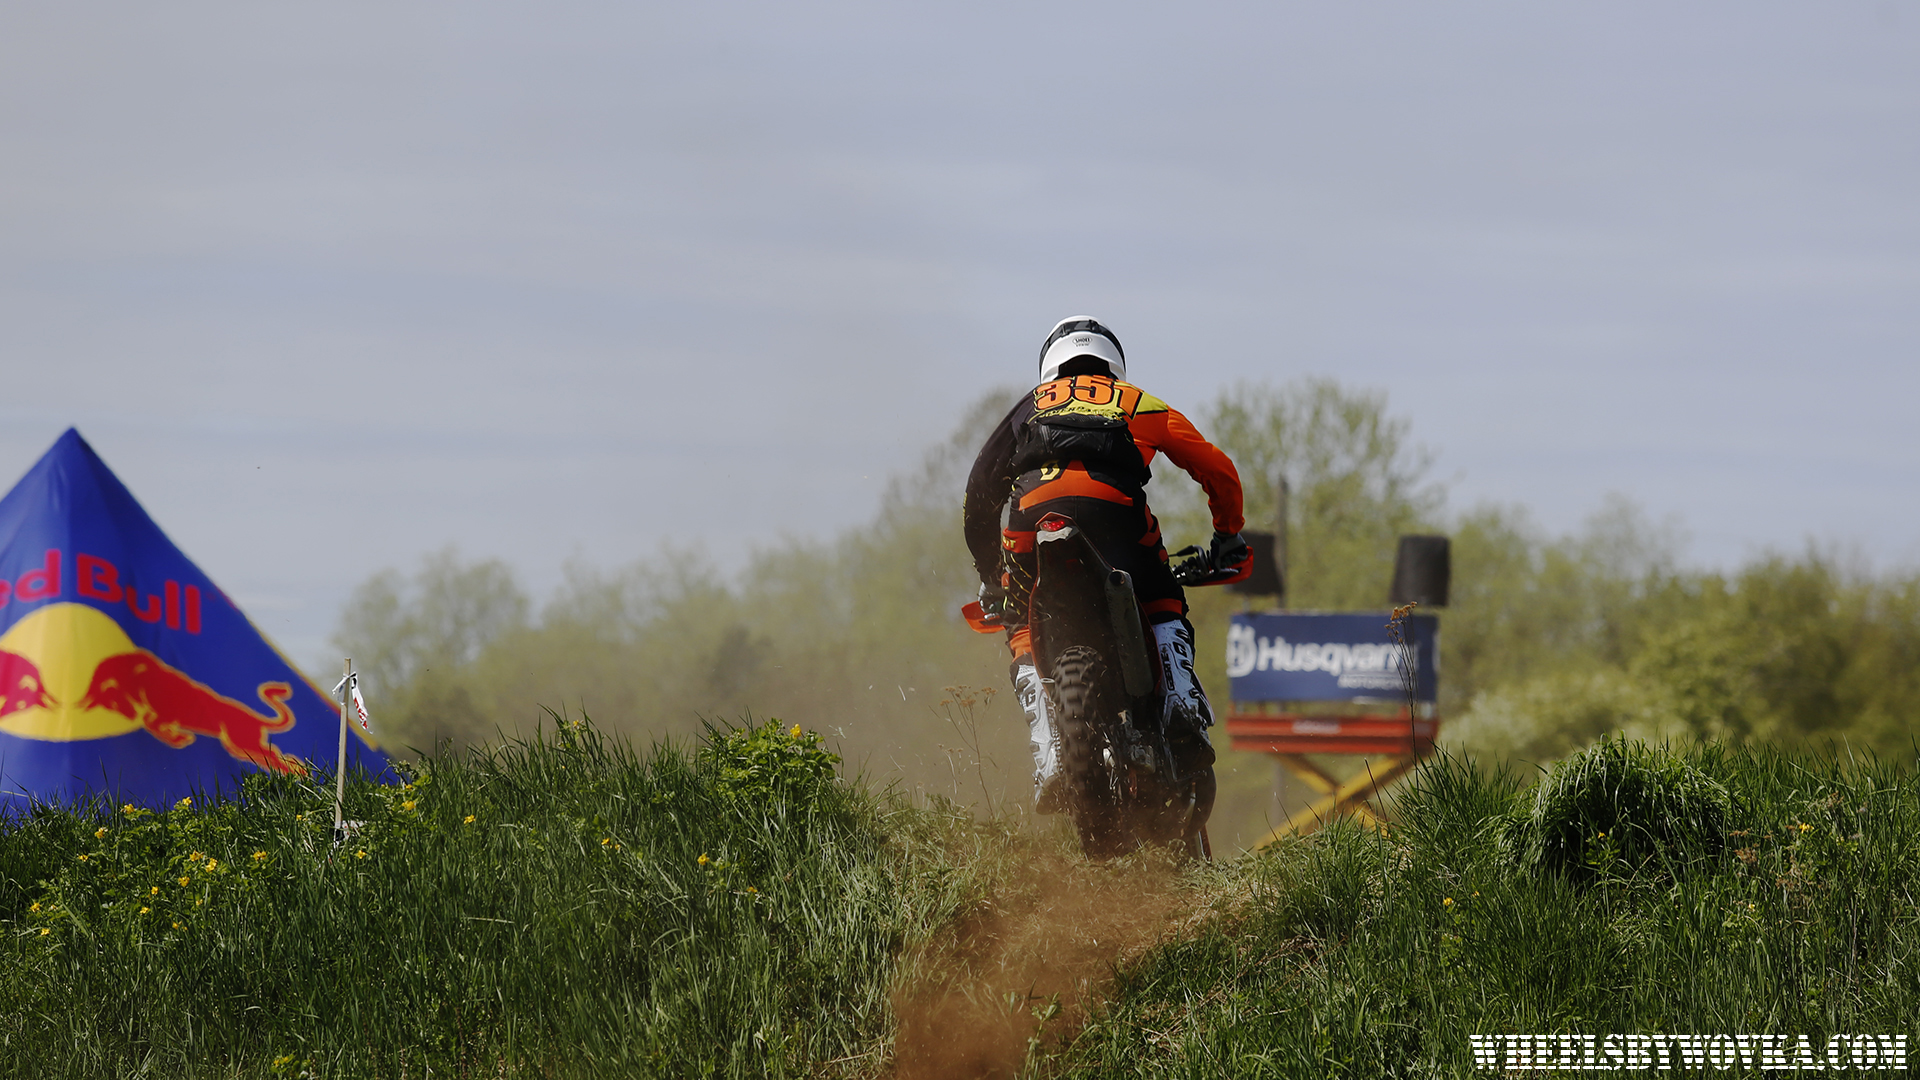 enduro-tallinn-estonia-gp-by-wheelsbywovka-12